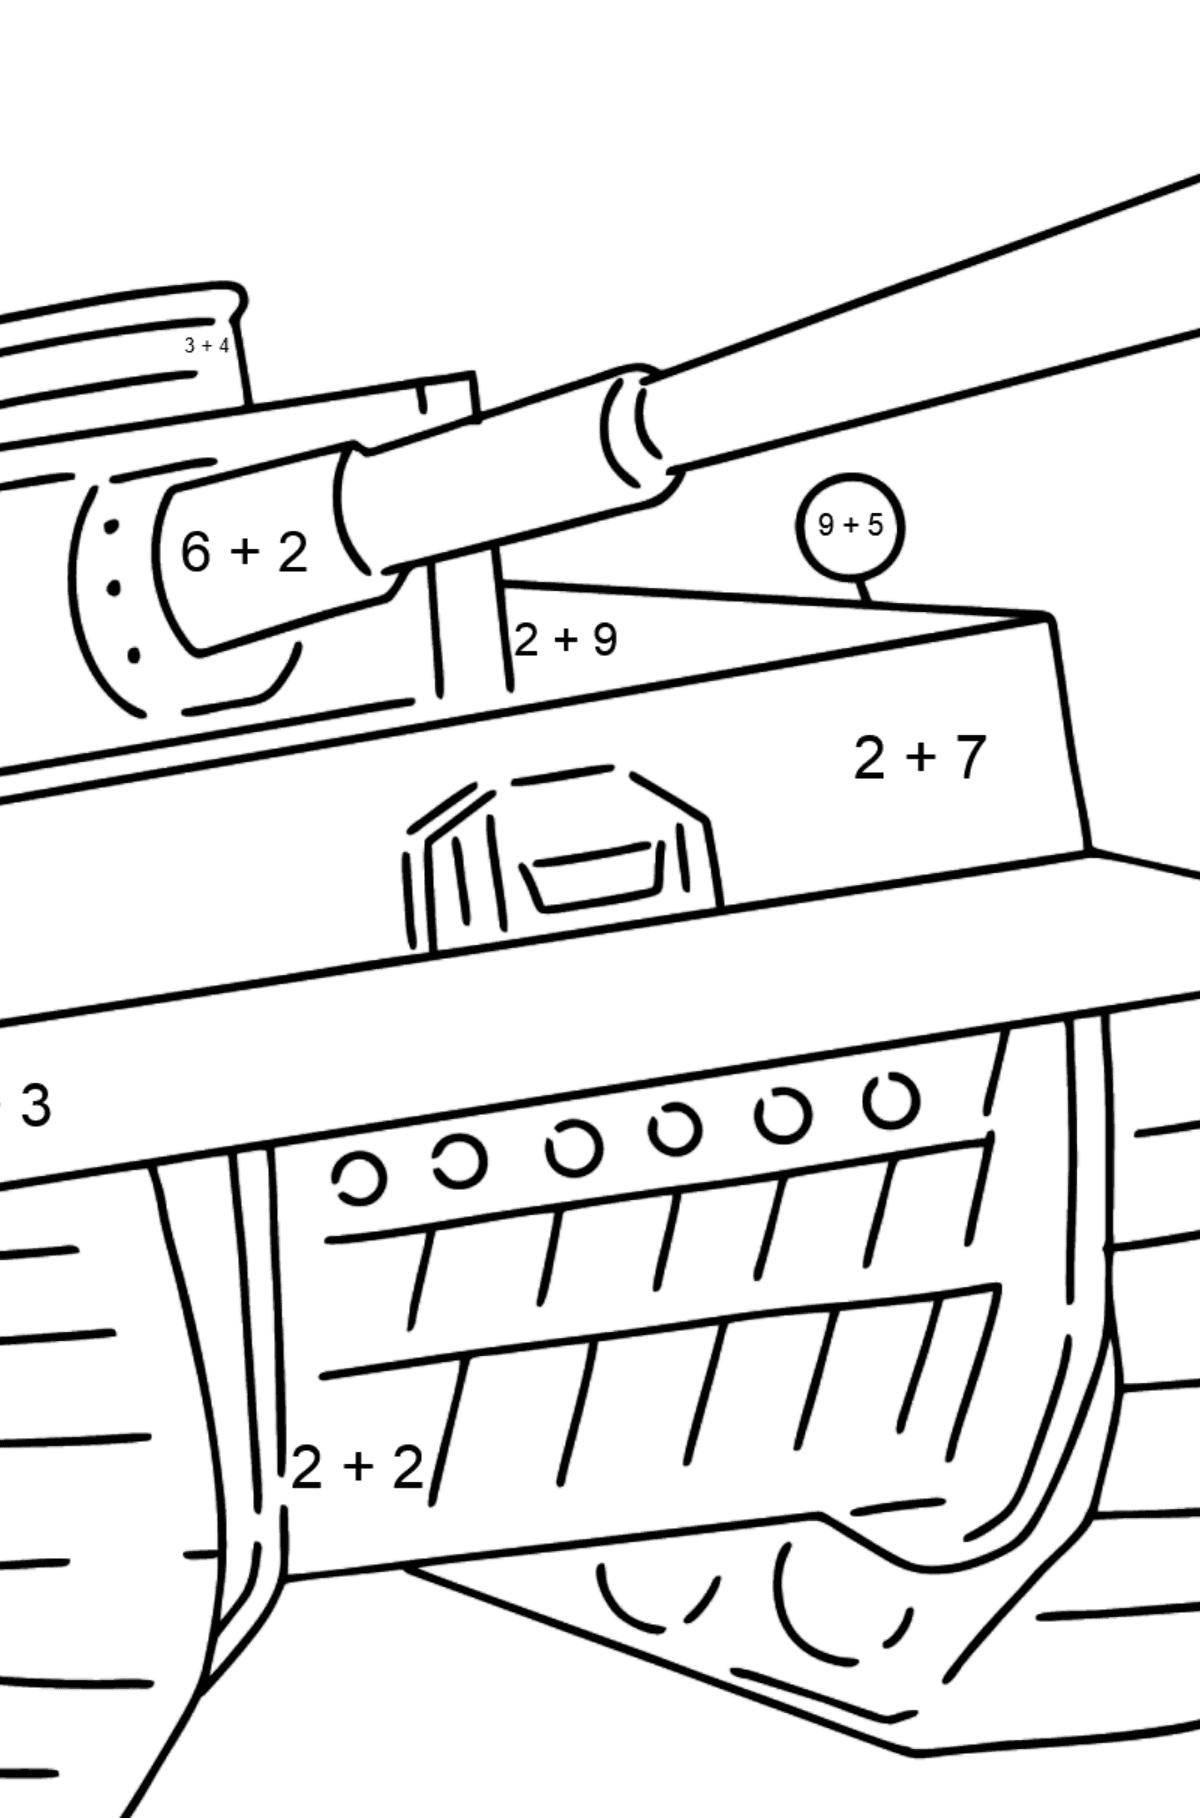 Tank Panther coloring page - Math Coloring - Addition for Kids